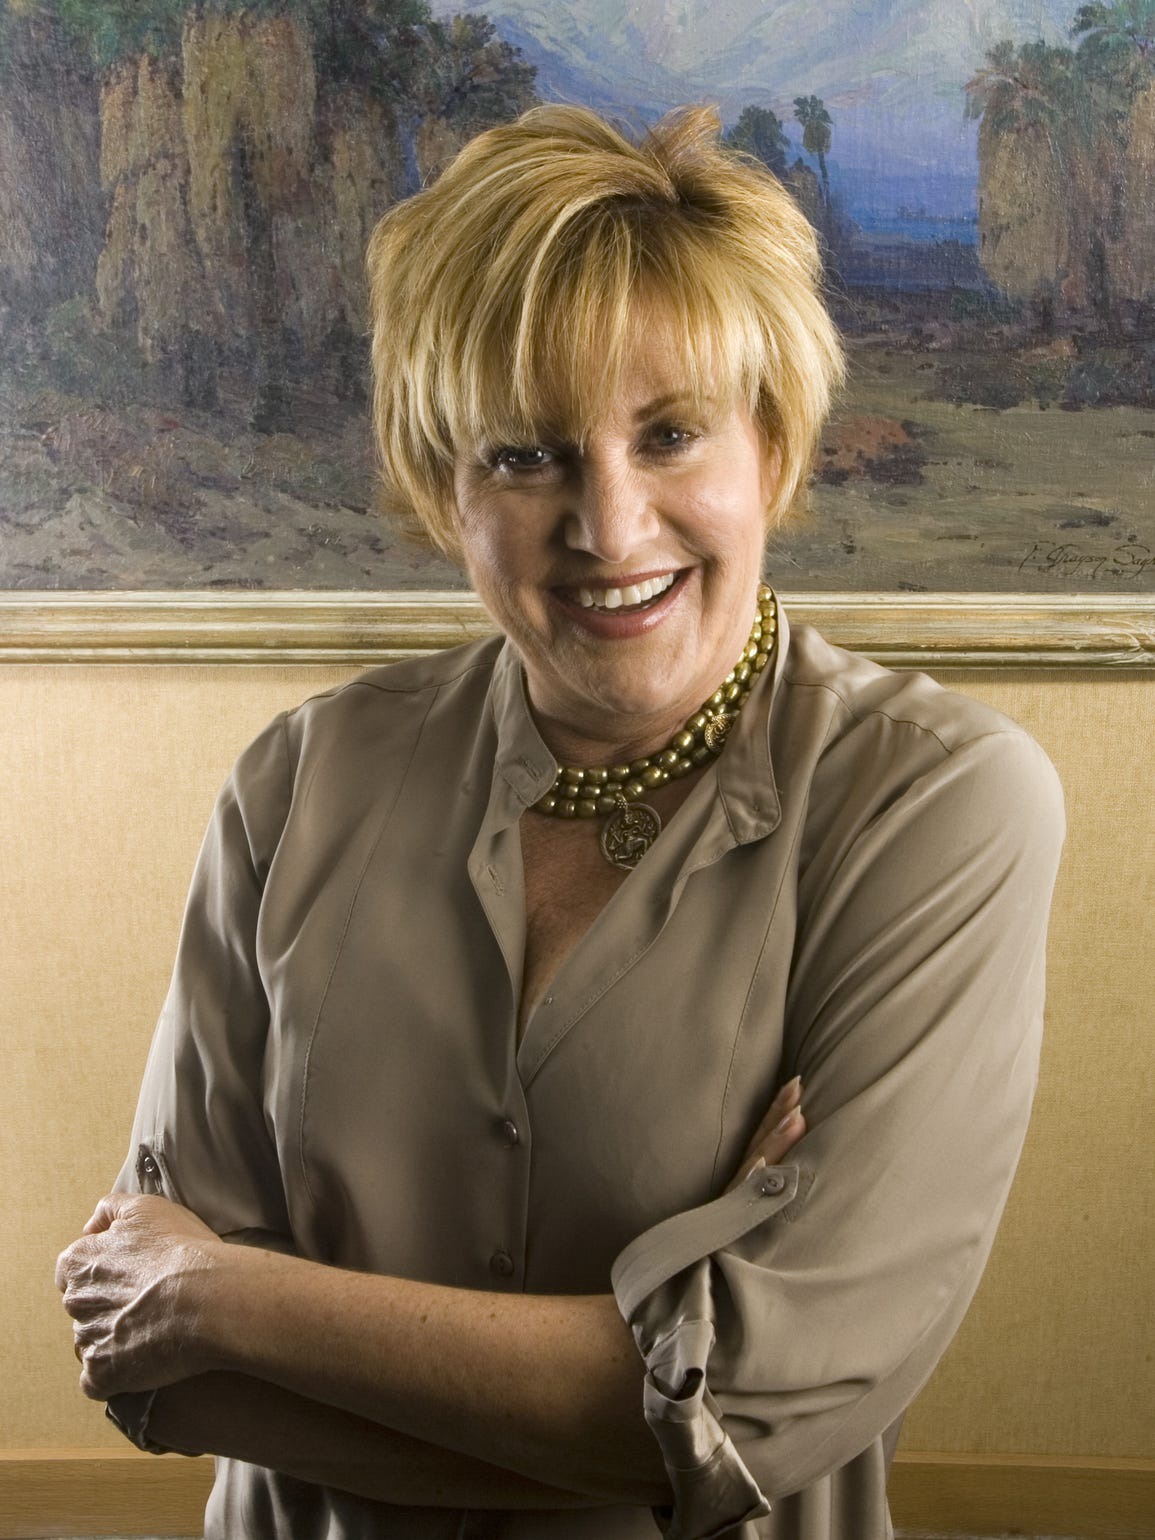 Lorna Luft, photographed at The Living Desert in Palm Desert.